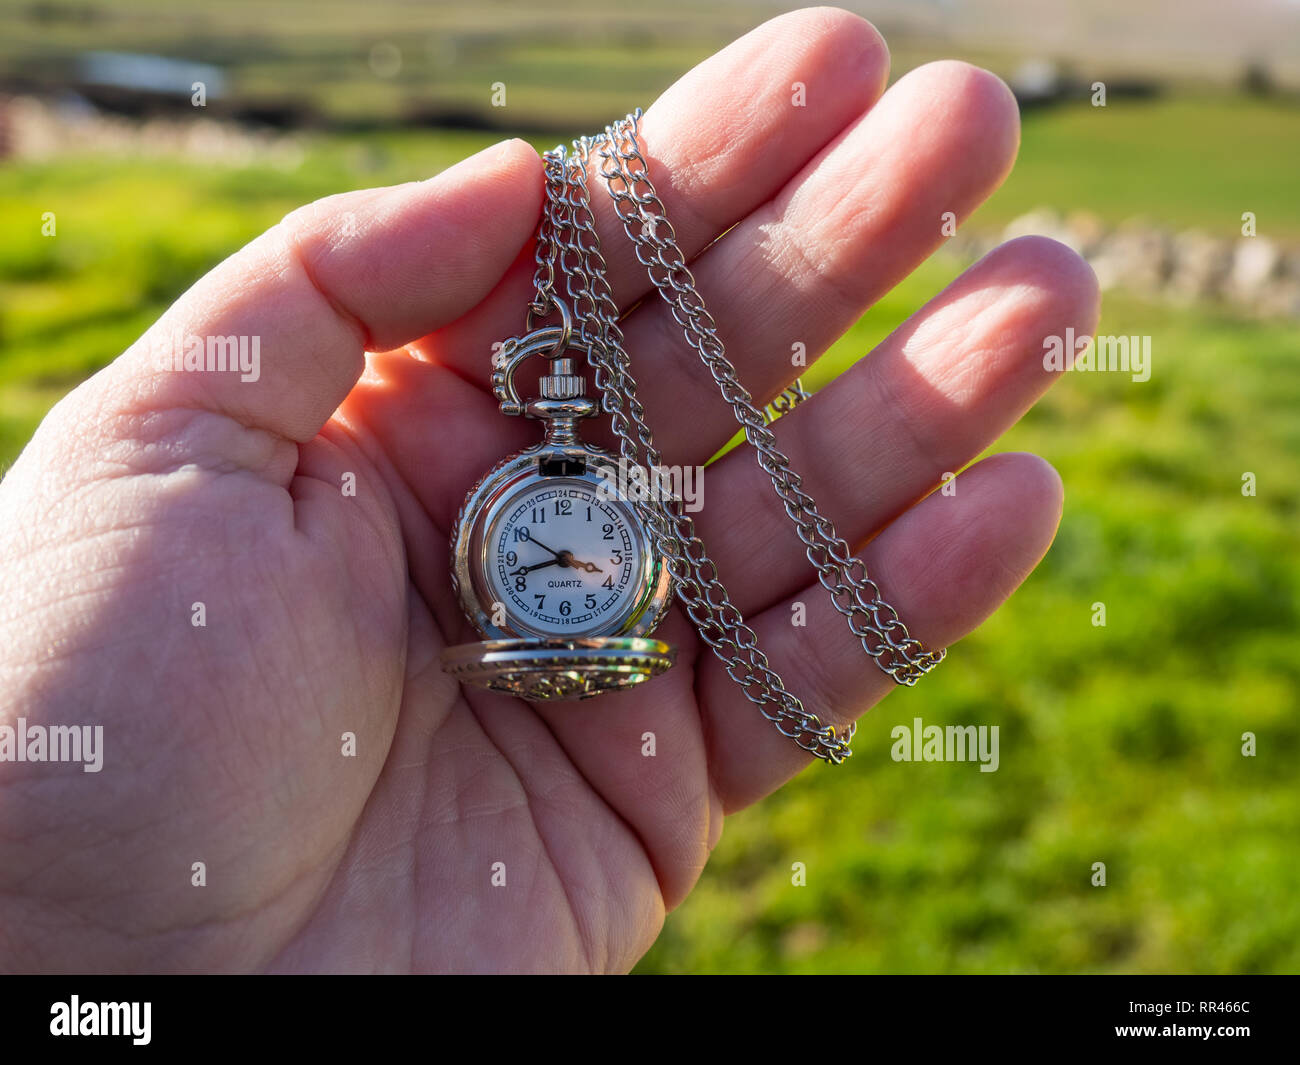 One person with one antique chain watch plated in his hand - Stock Image